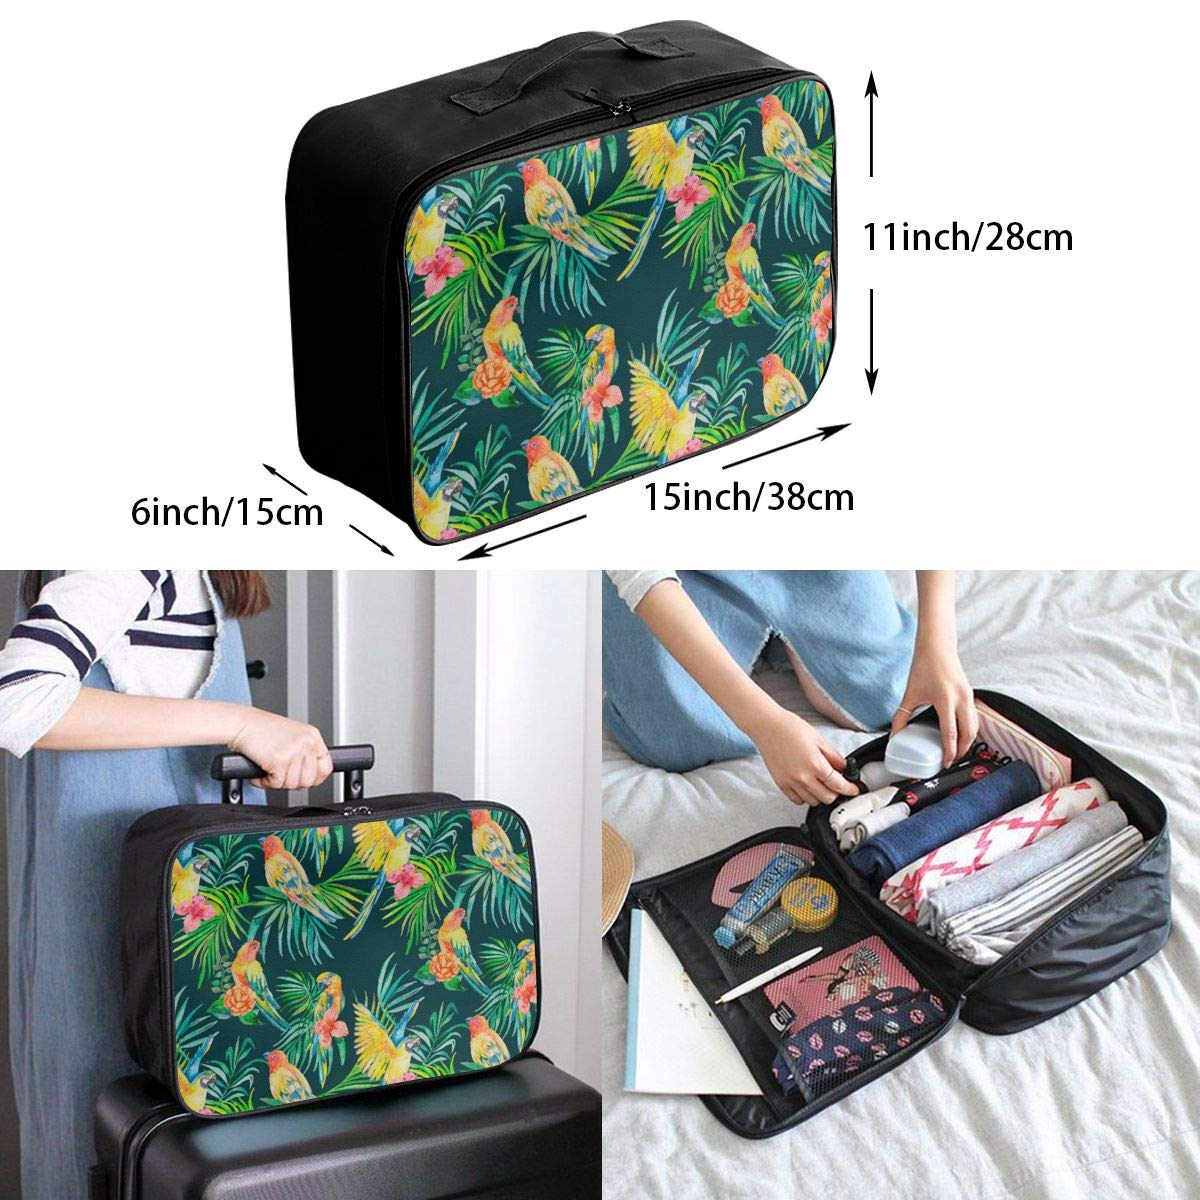 Women /& Men Foldable Travel Duffel Bag Parrot On The Leaf For Luggage Gym Sports